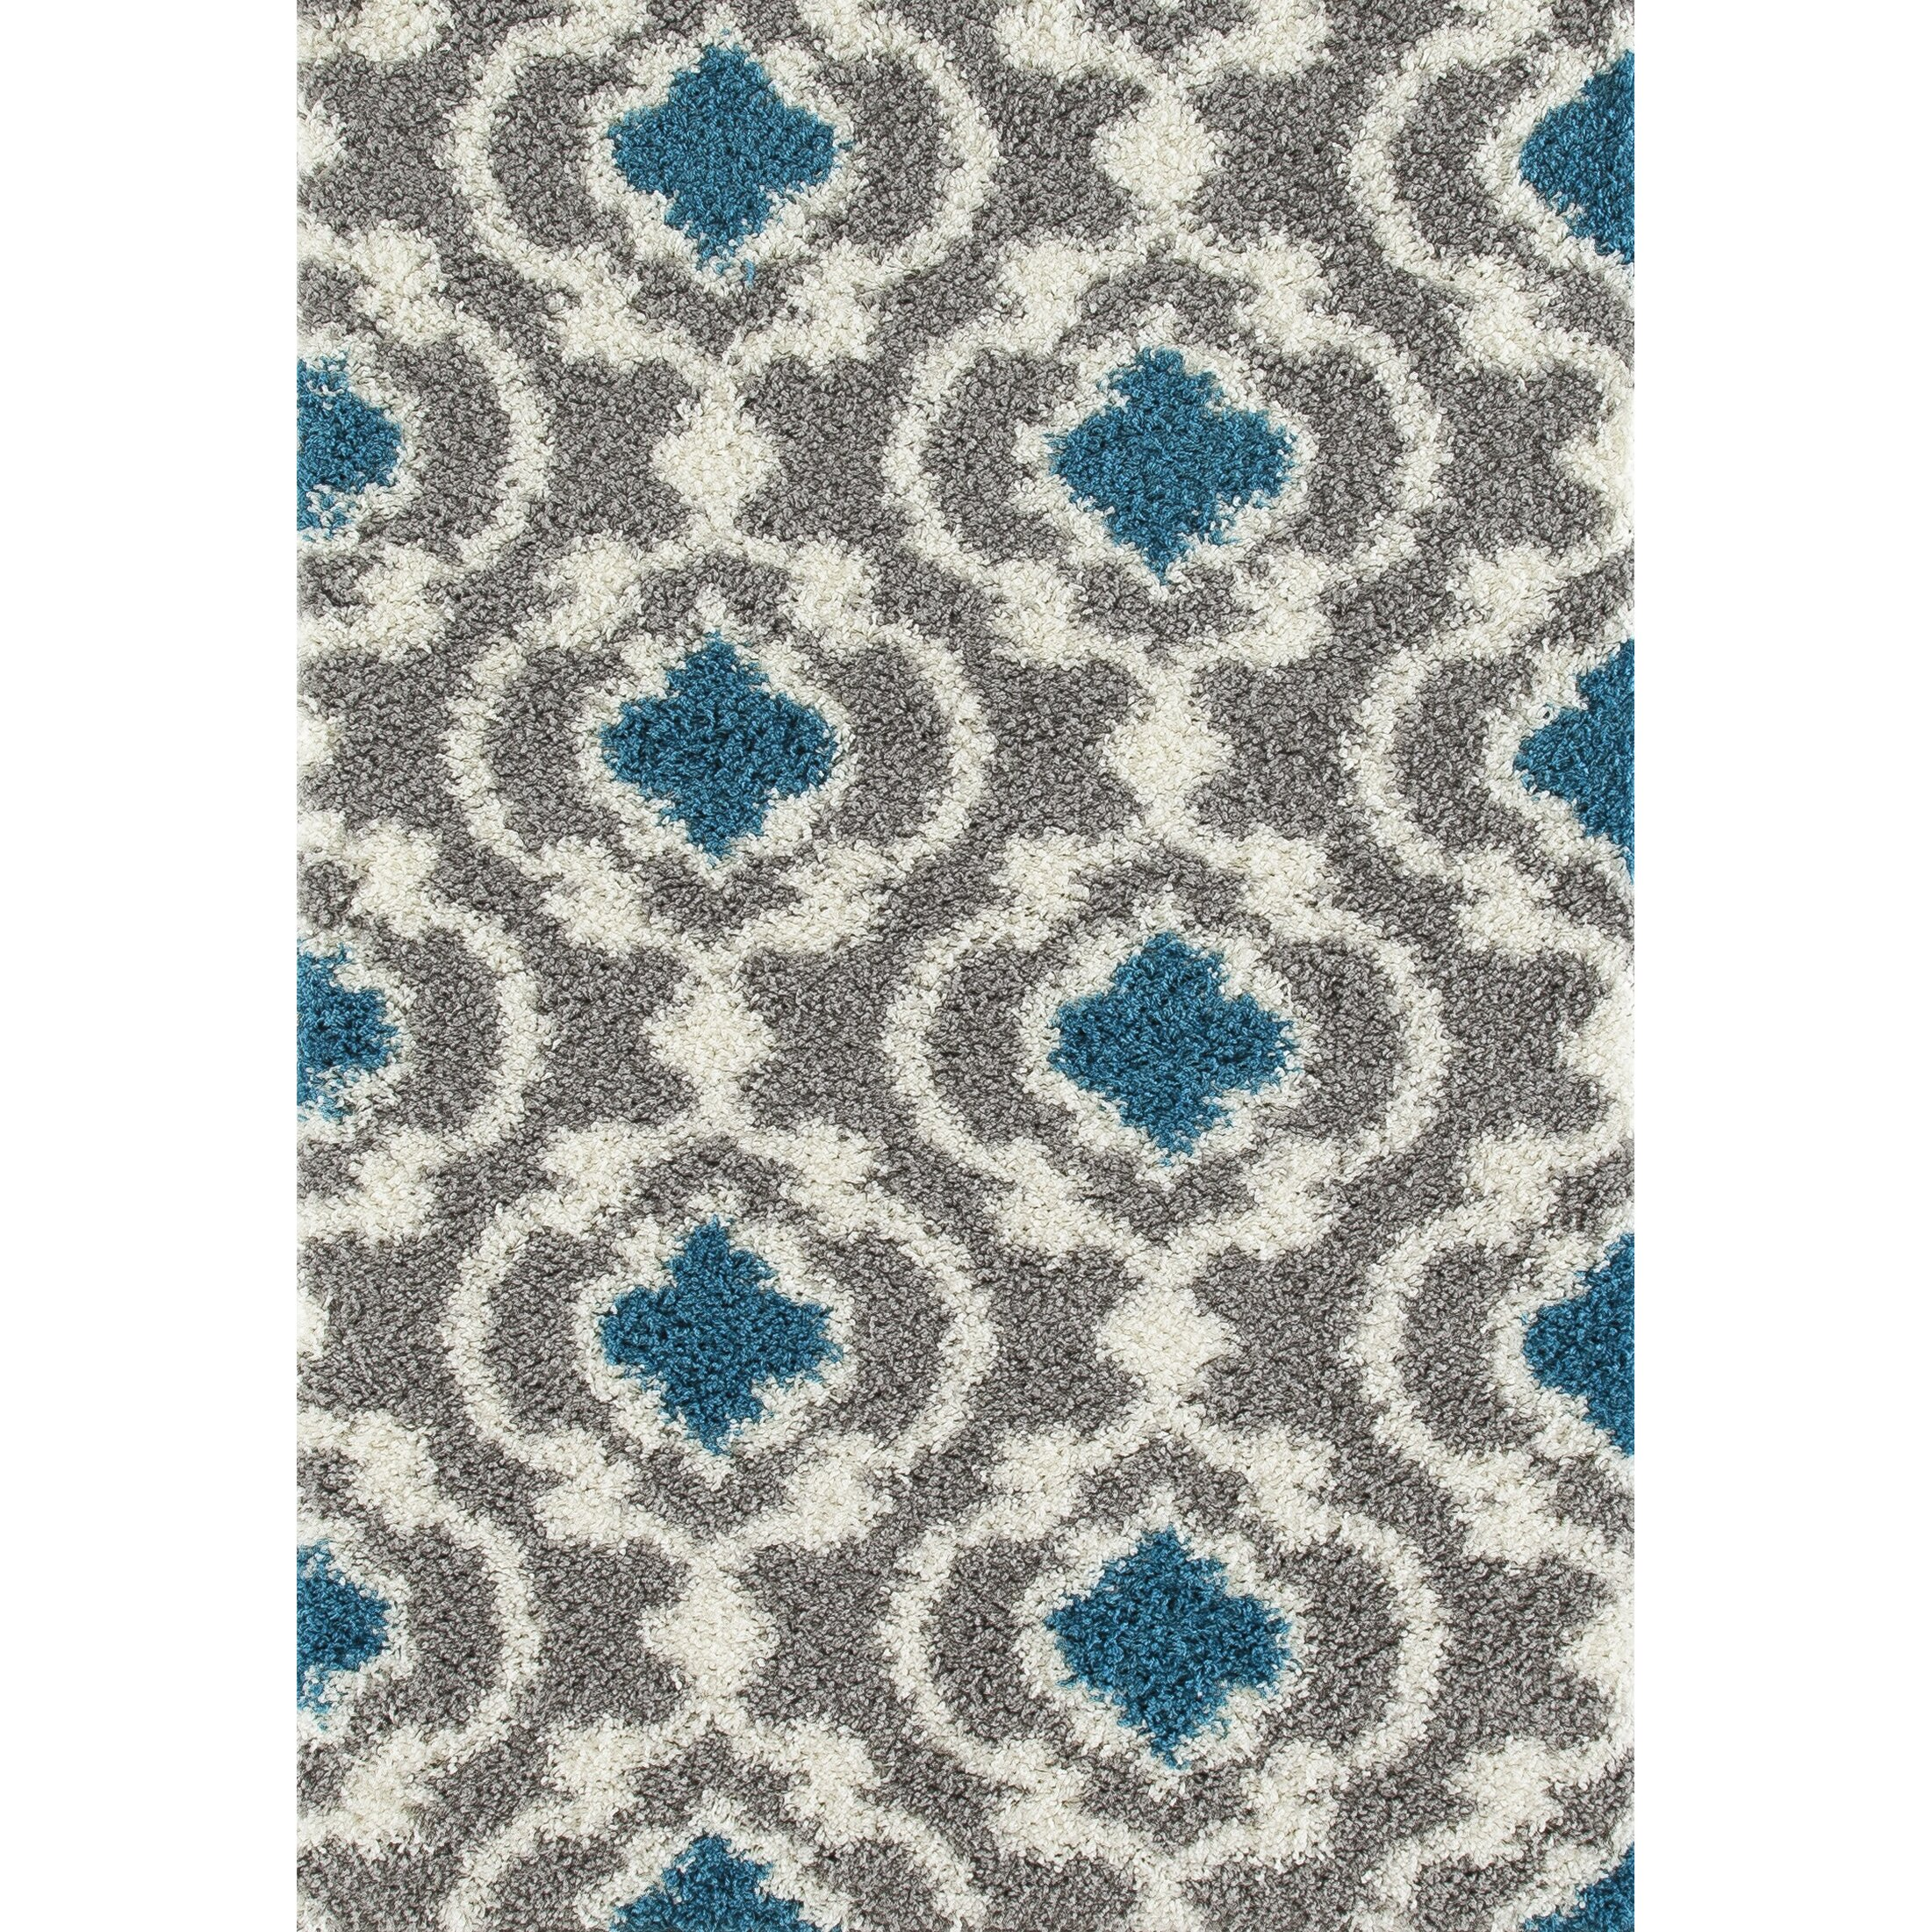 World Rug Gallery Florida Gray Turquoise Area Rug